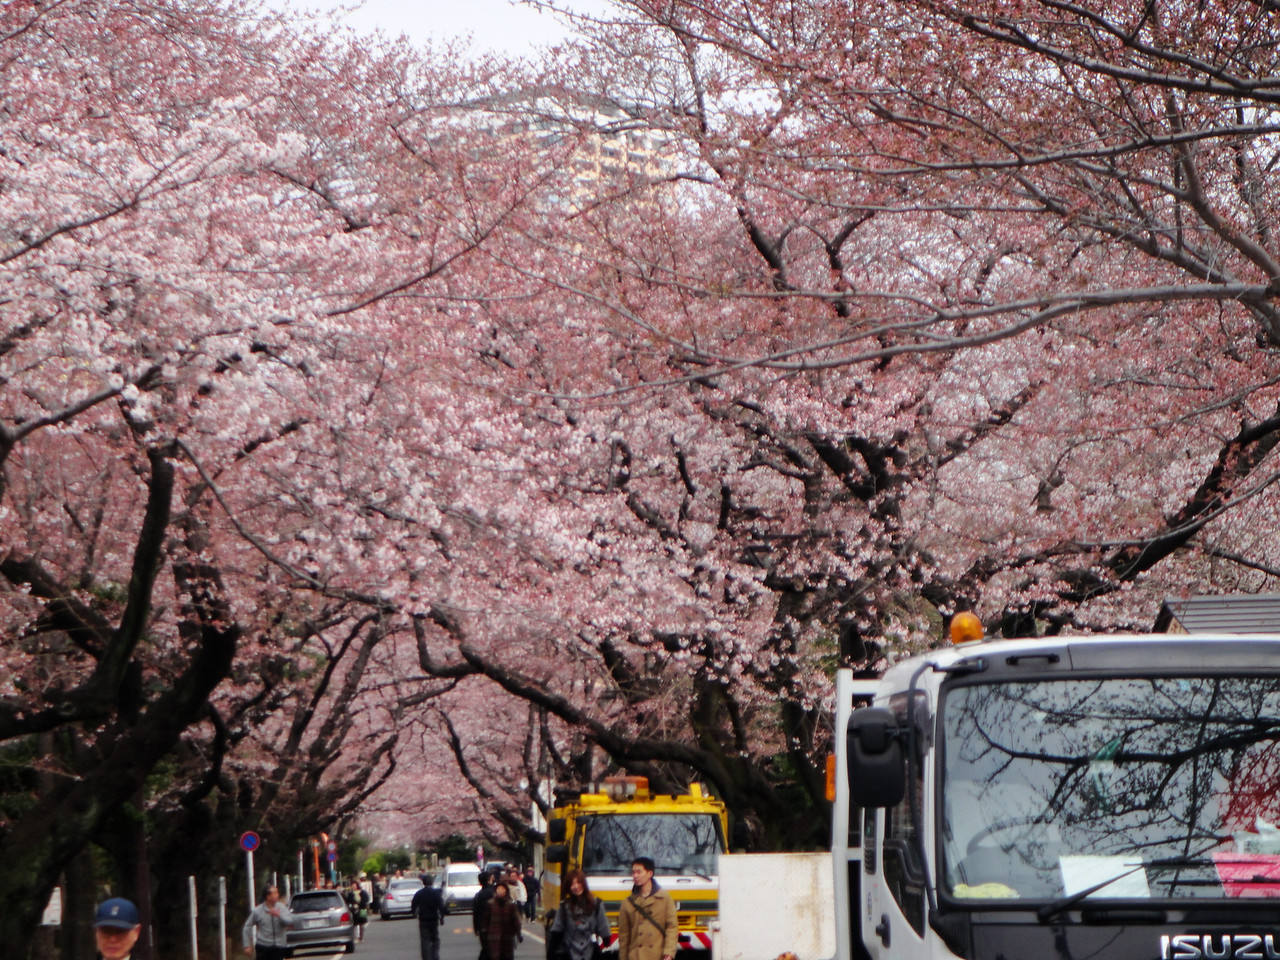 Sakura lined streets and we were there at the perfect time!